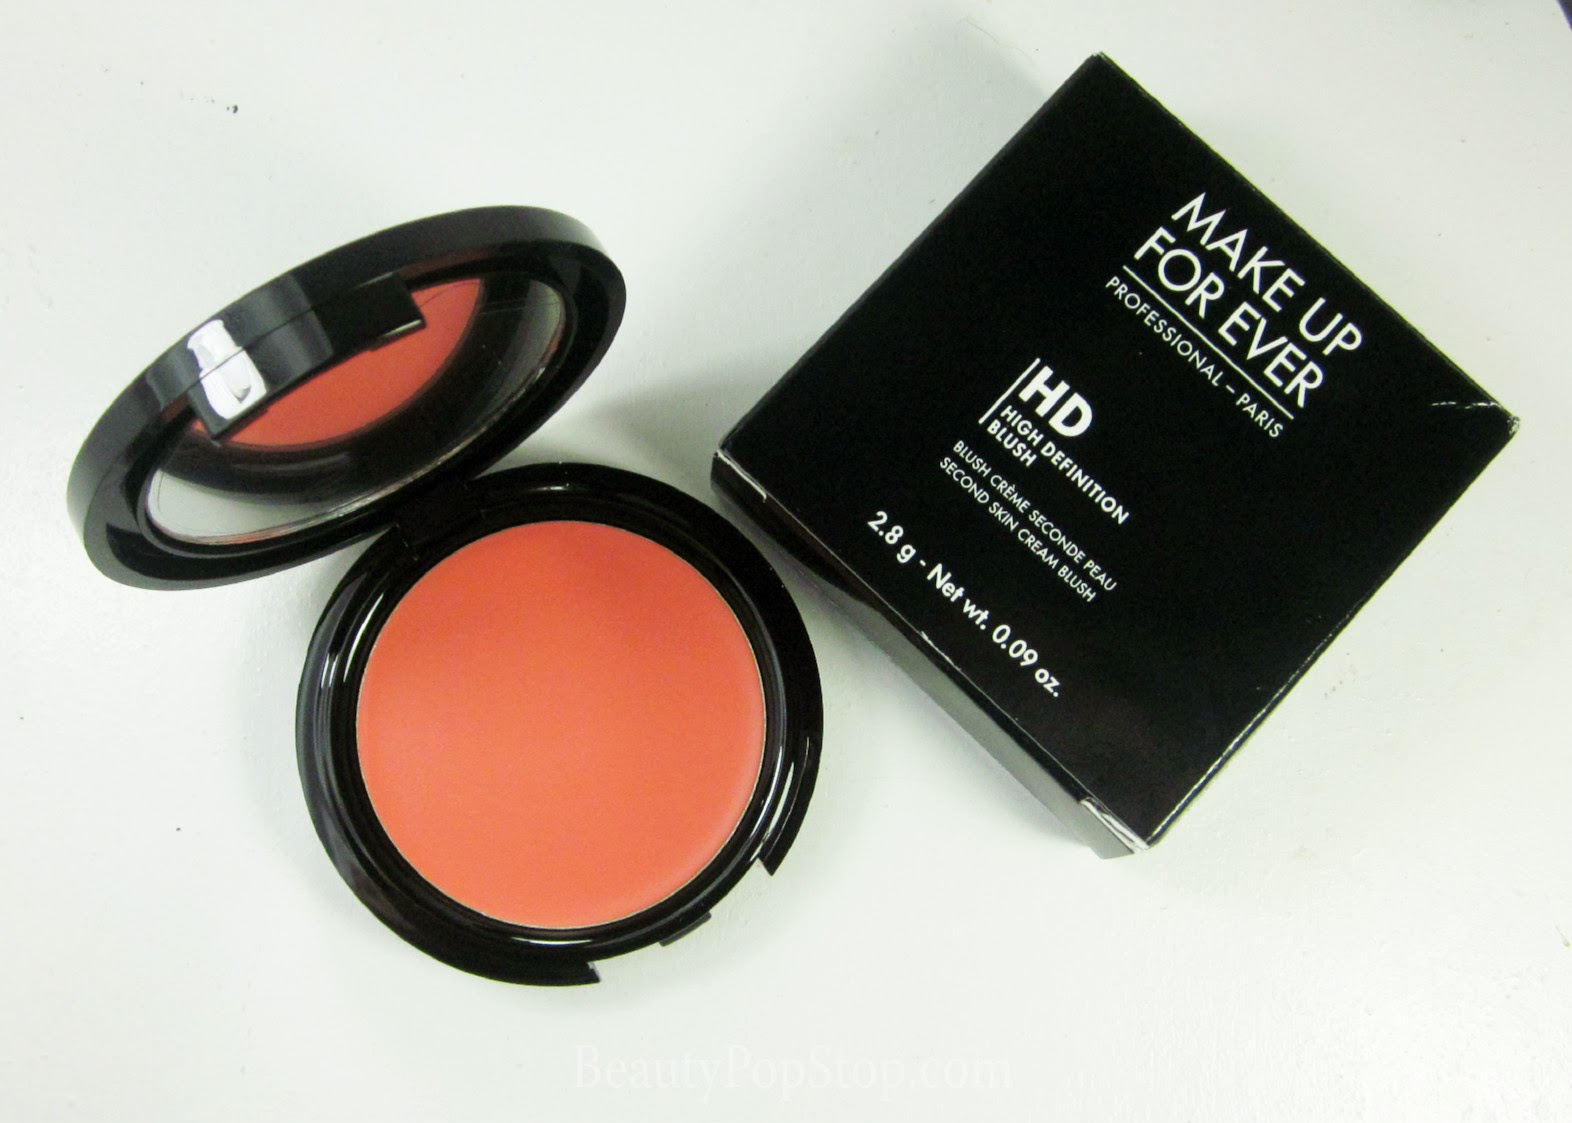 new make up for ever hd blush 410 coral swatch and review